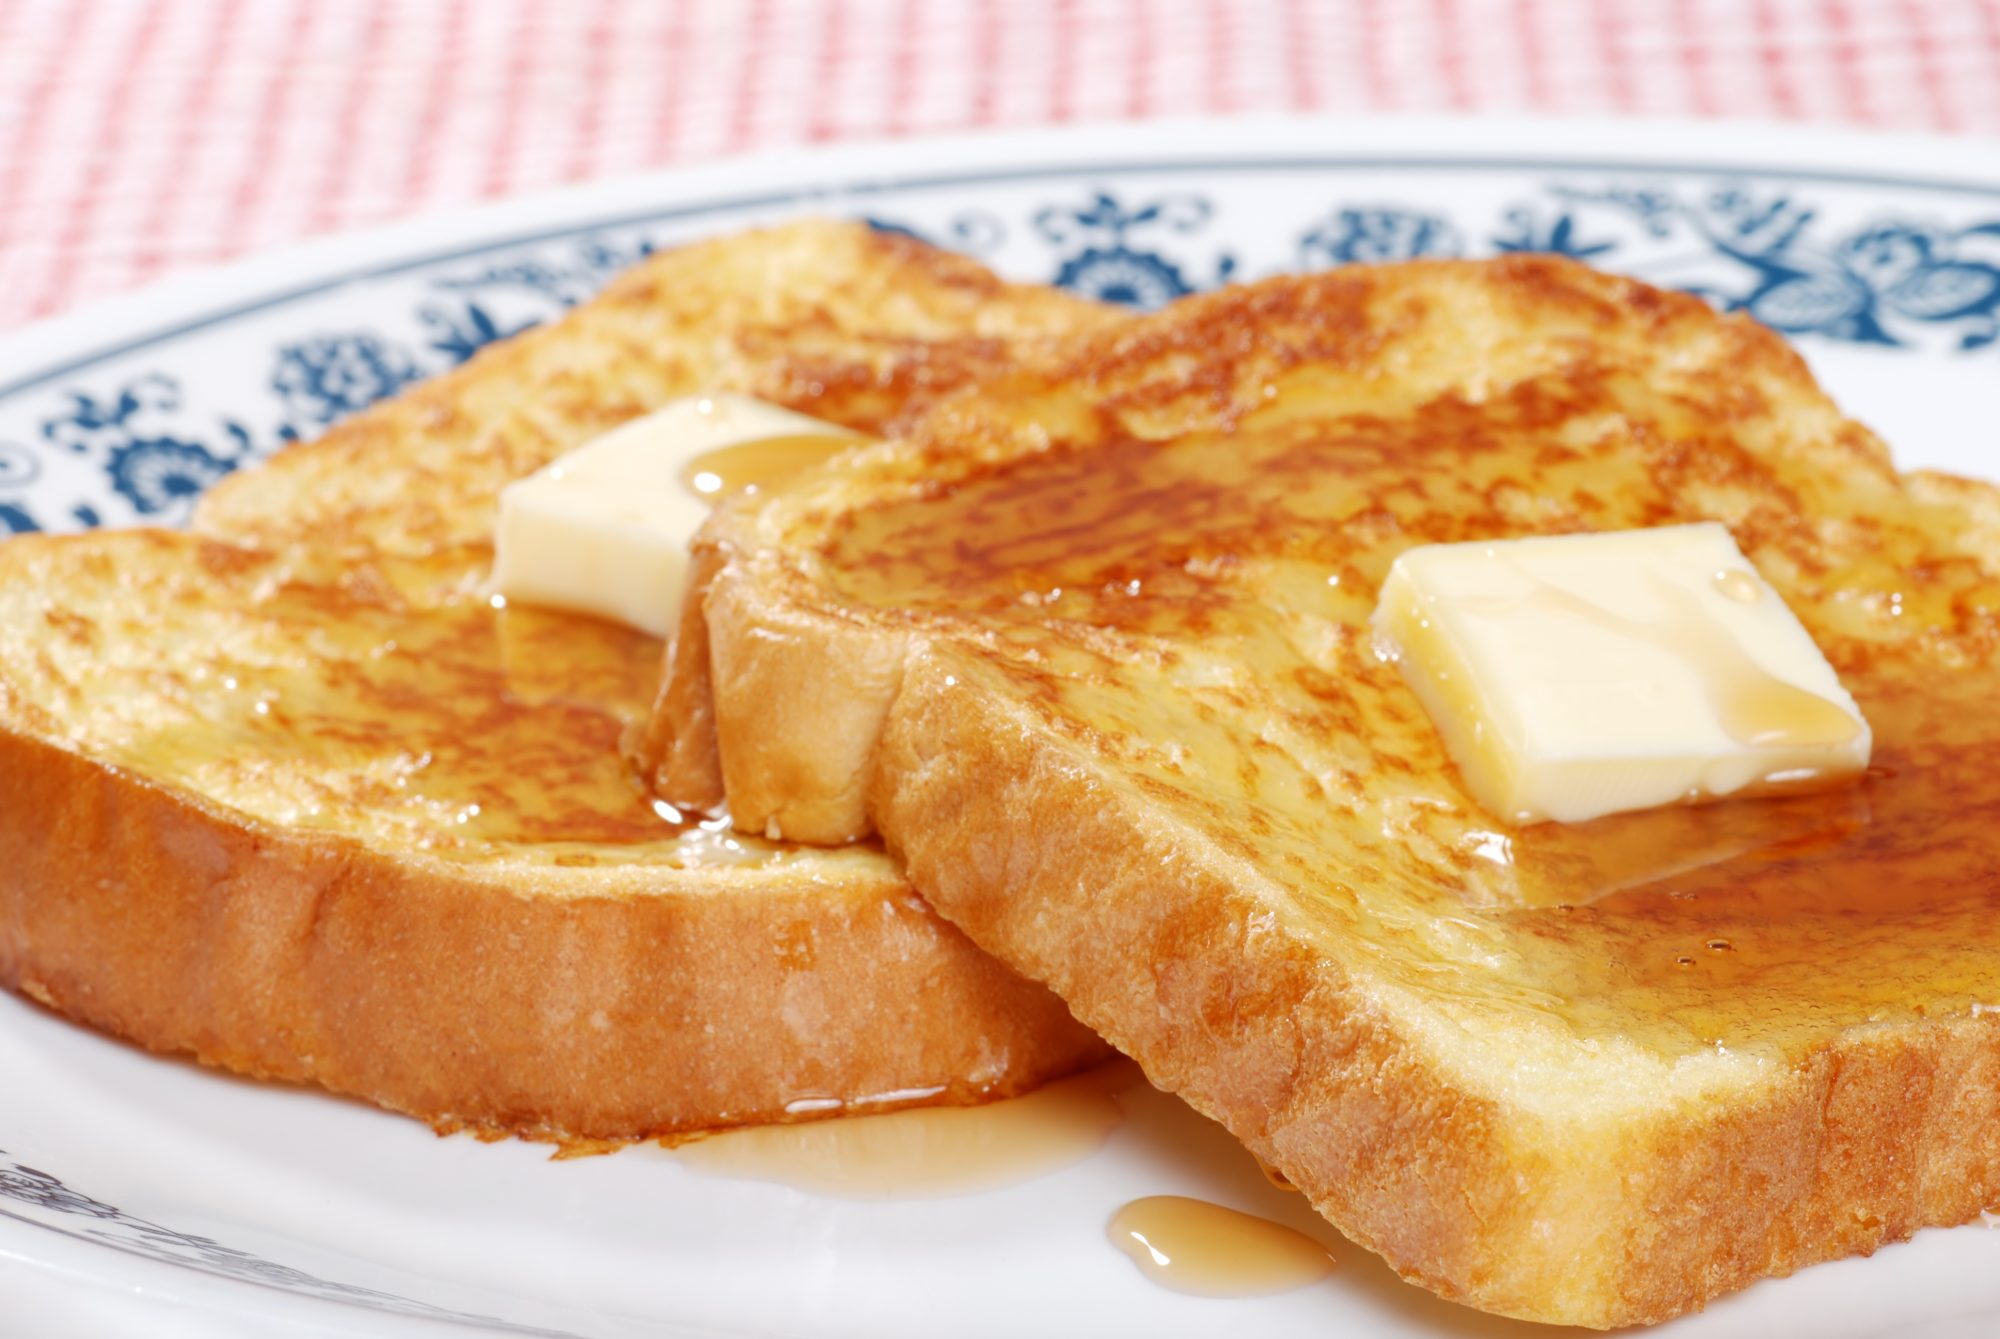 French toast on patterned plate with butter